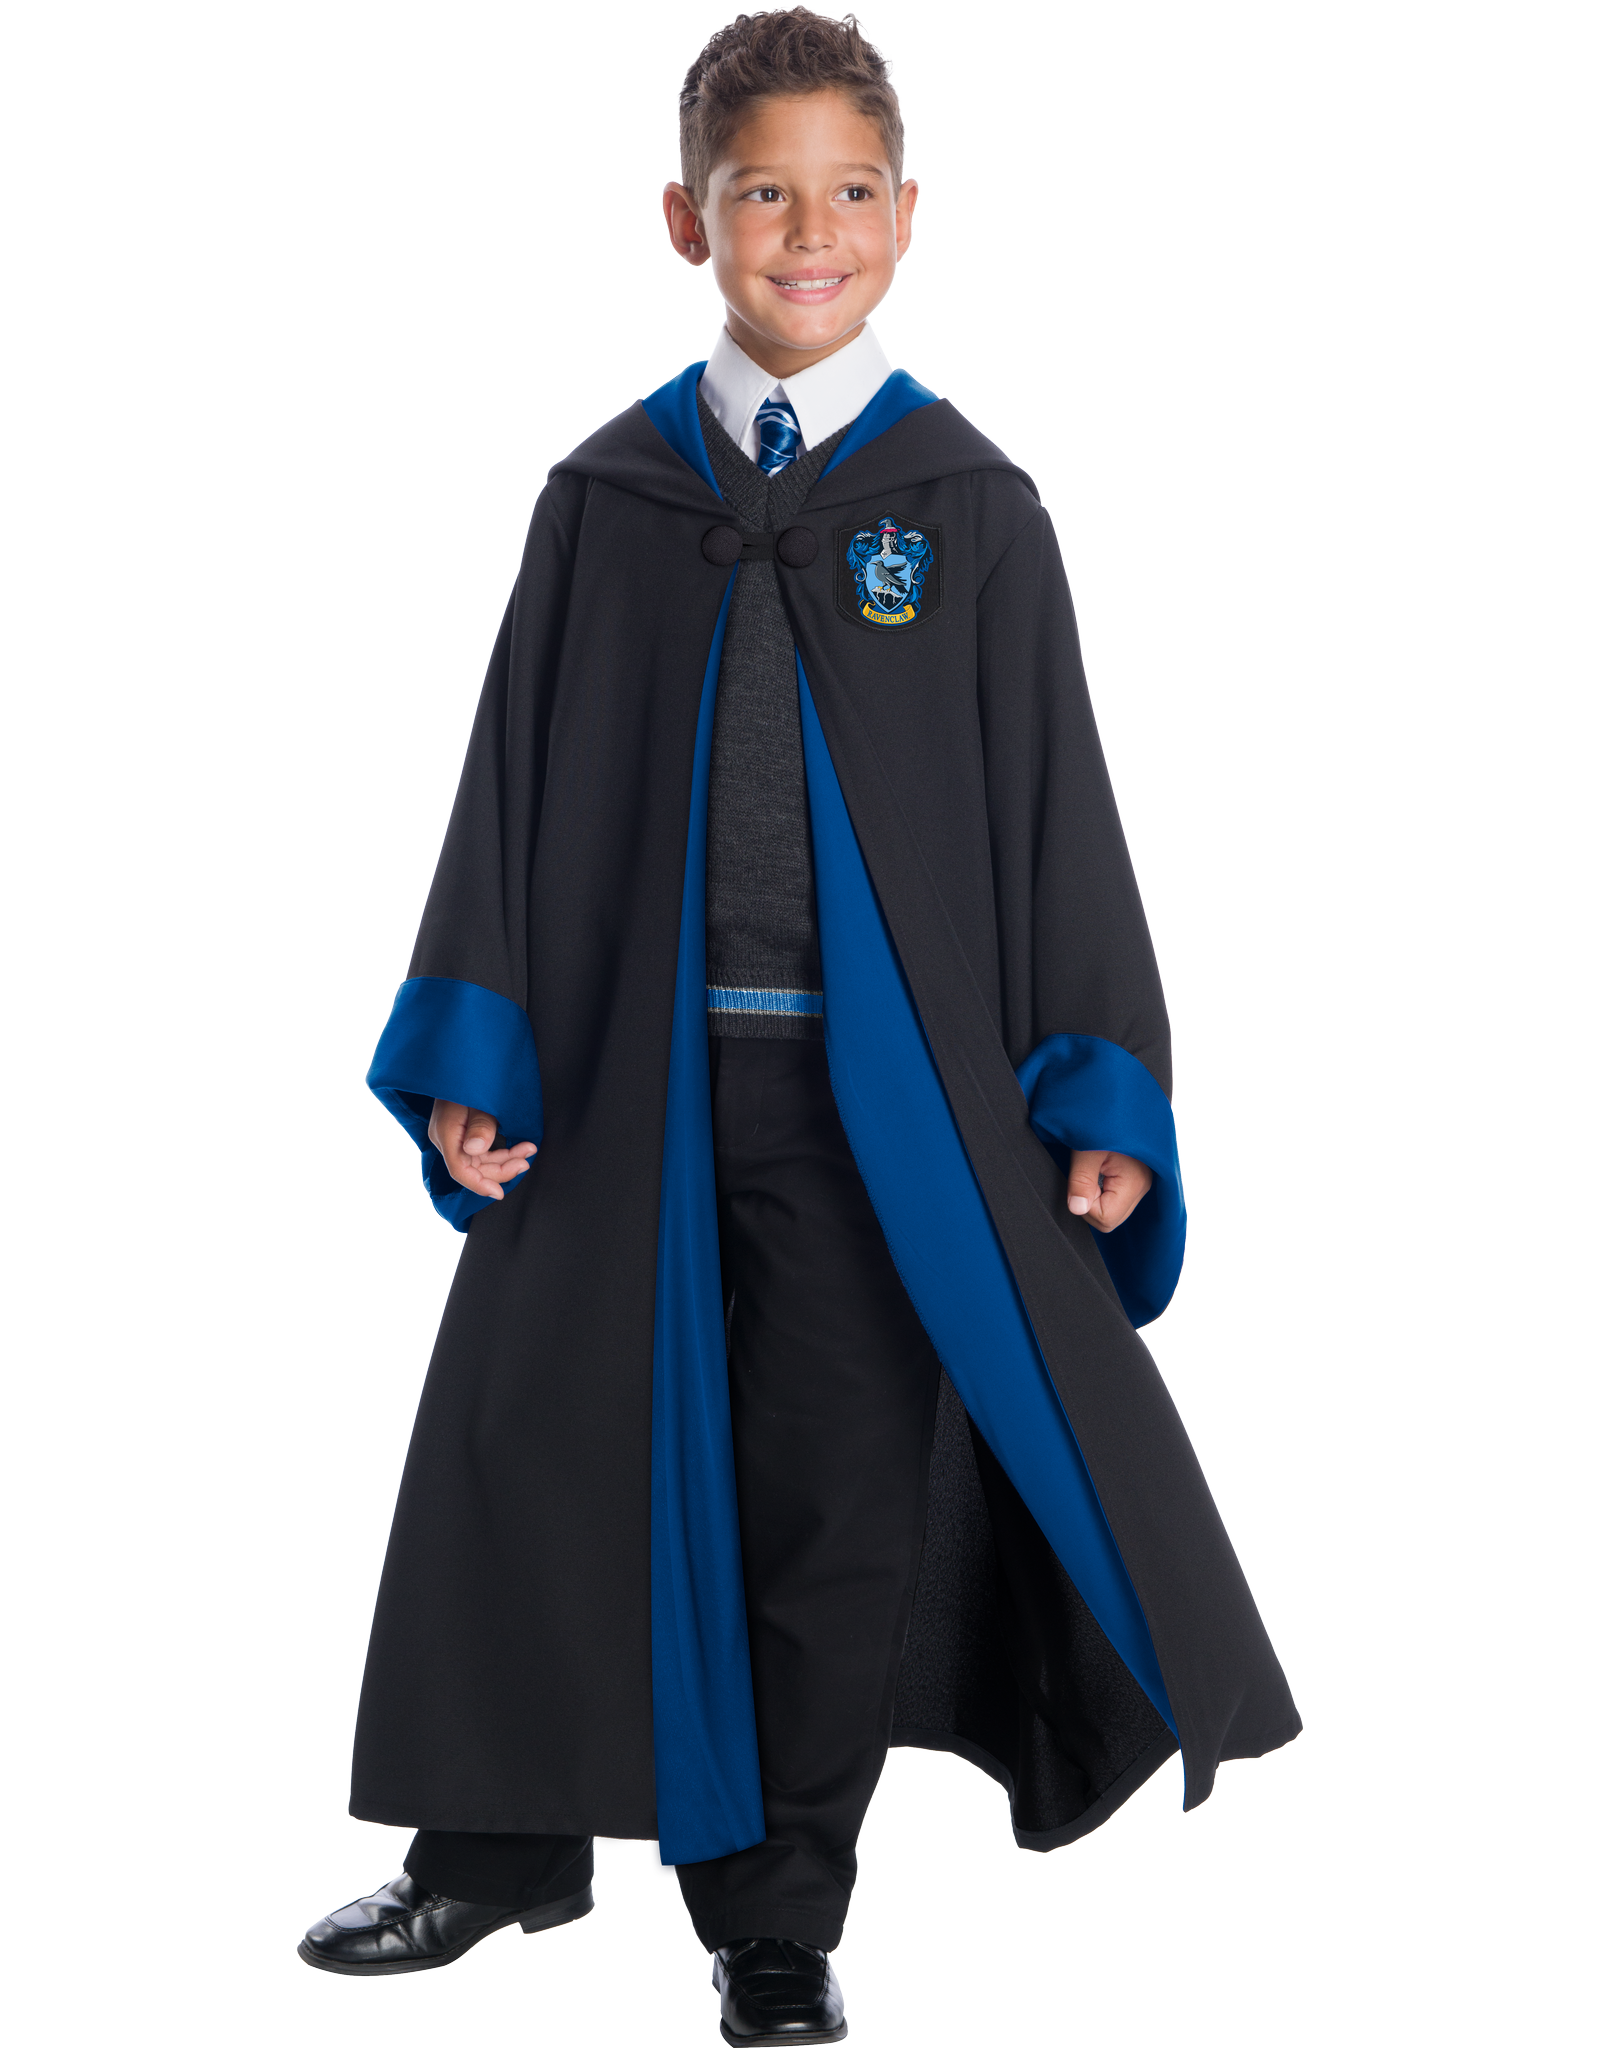 Charades Ravenclaw Student